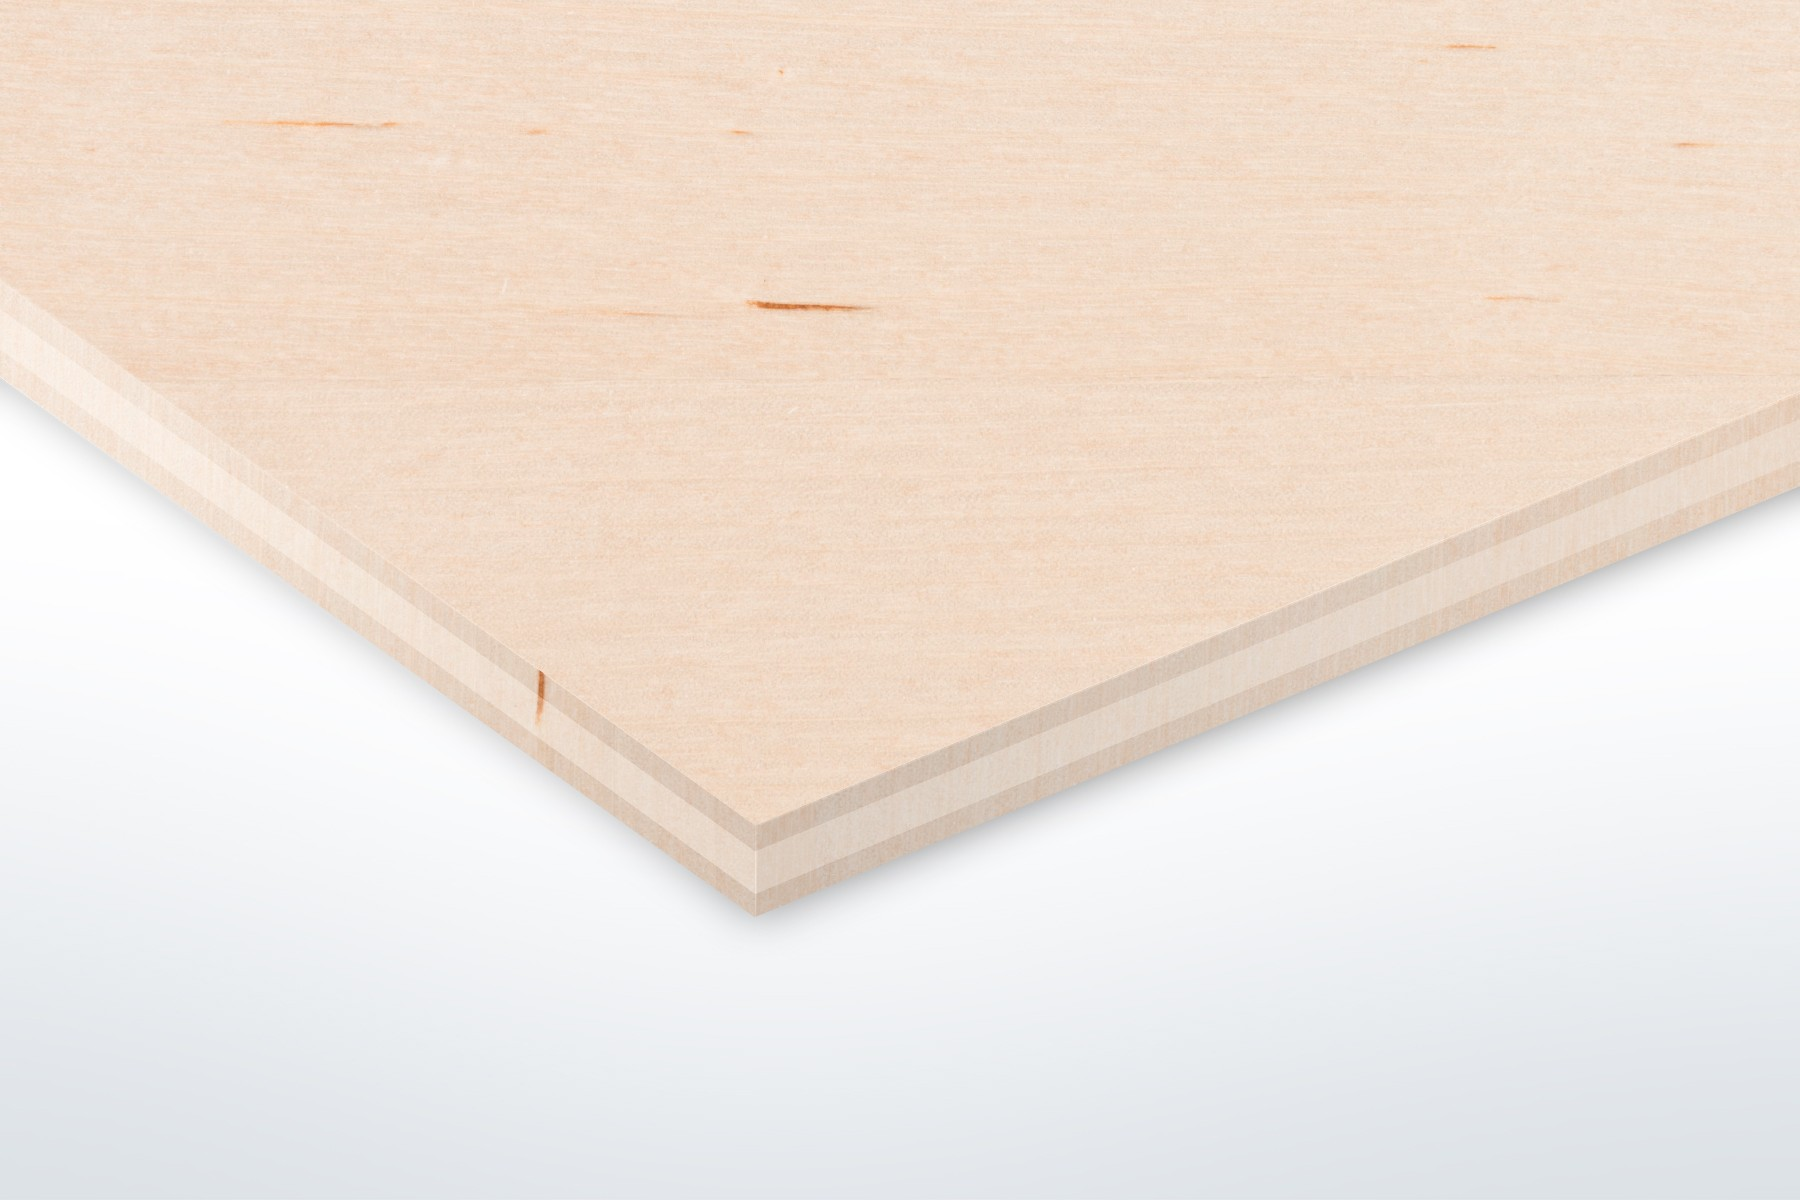 Poplar Plywood - 600 x 300mm - 3mm